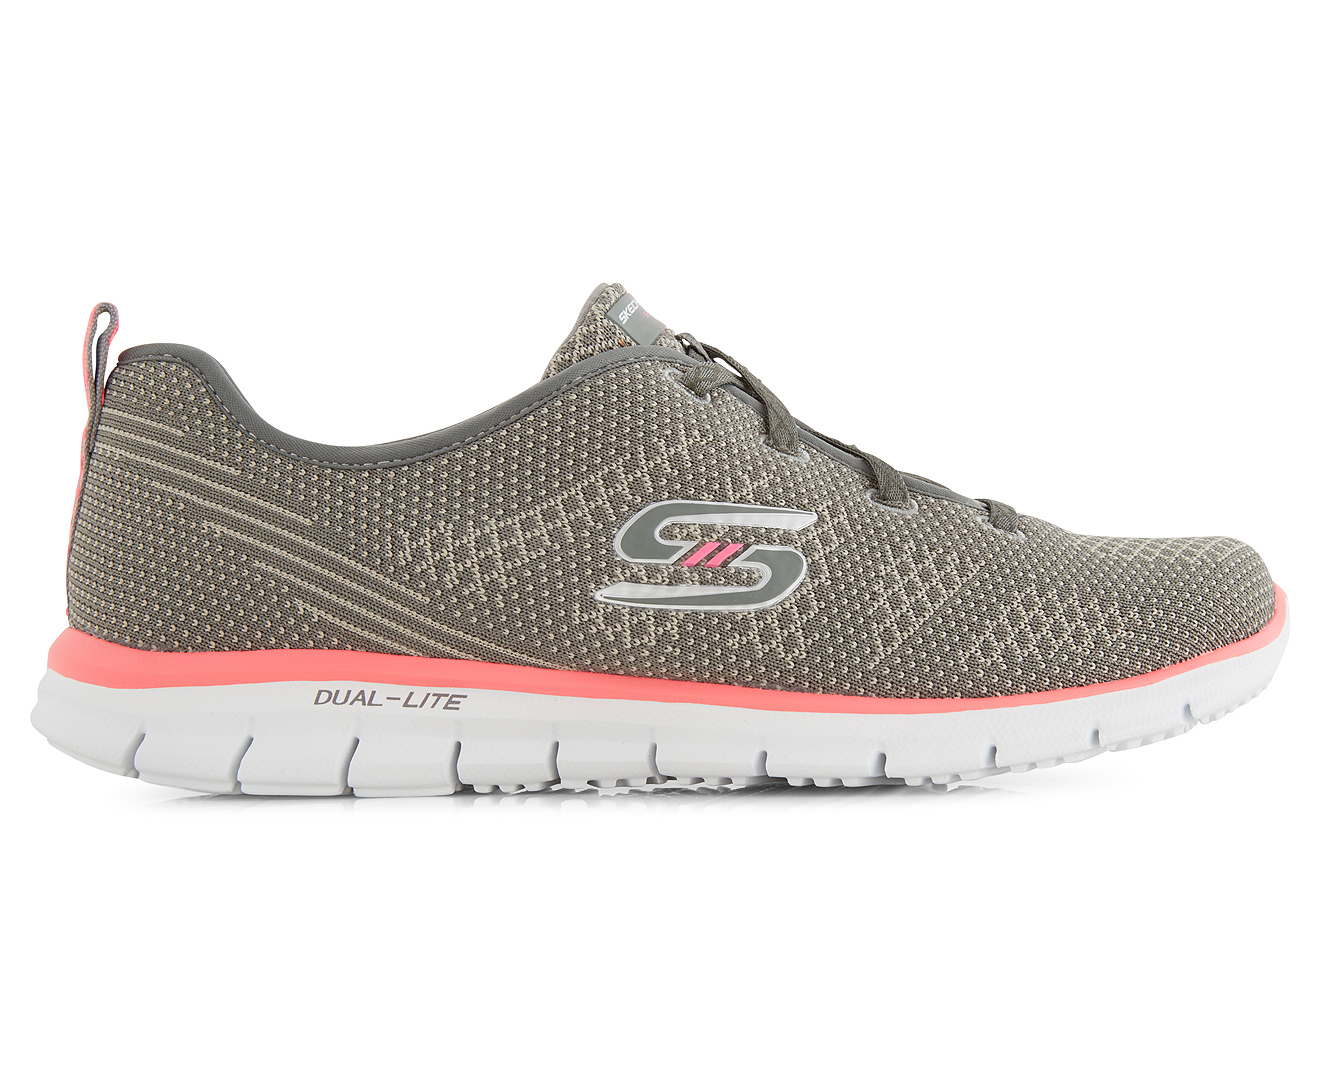 skechers women 39 s glider forever young shoe grey coral great daily deals at australia 39 s. Black Bedroom Furniture Sets. Home Design Ideas